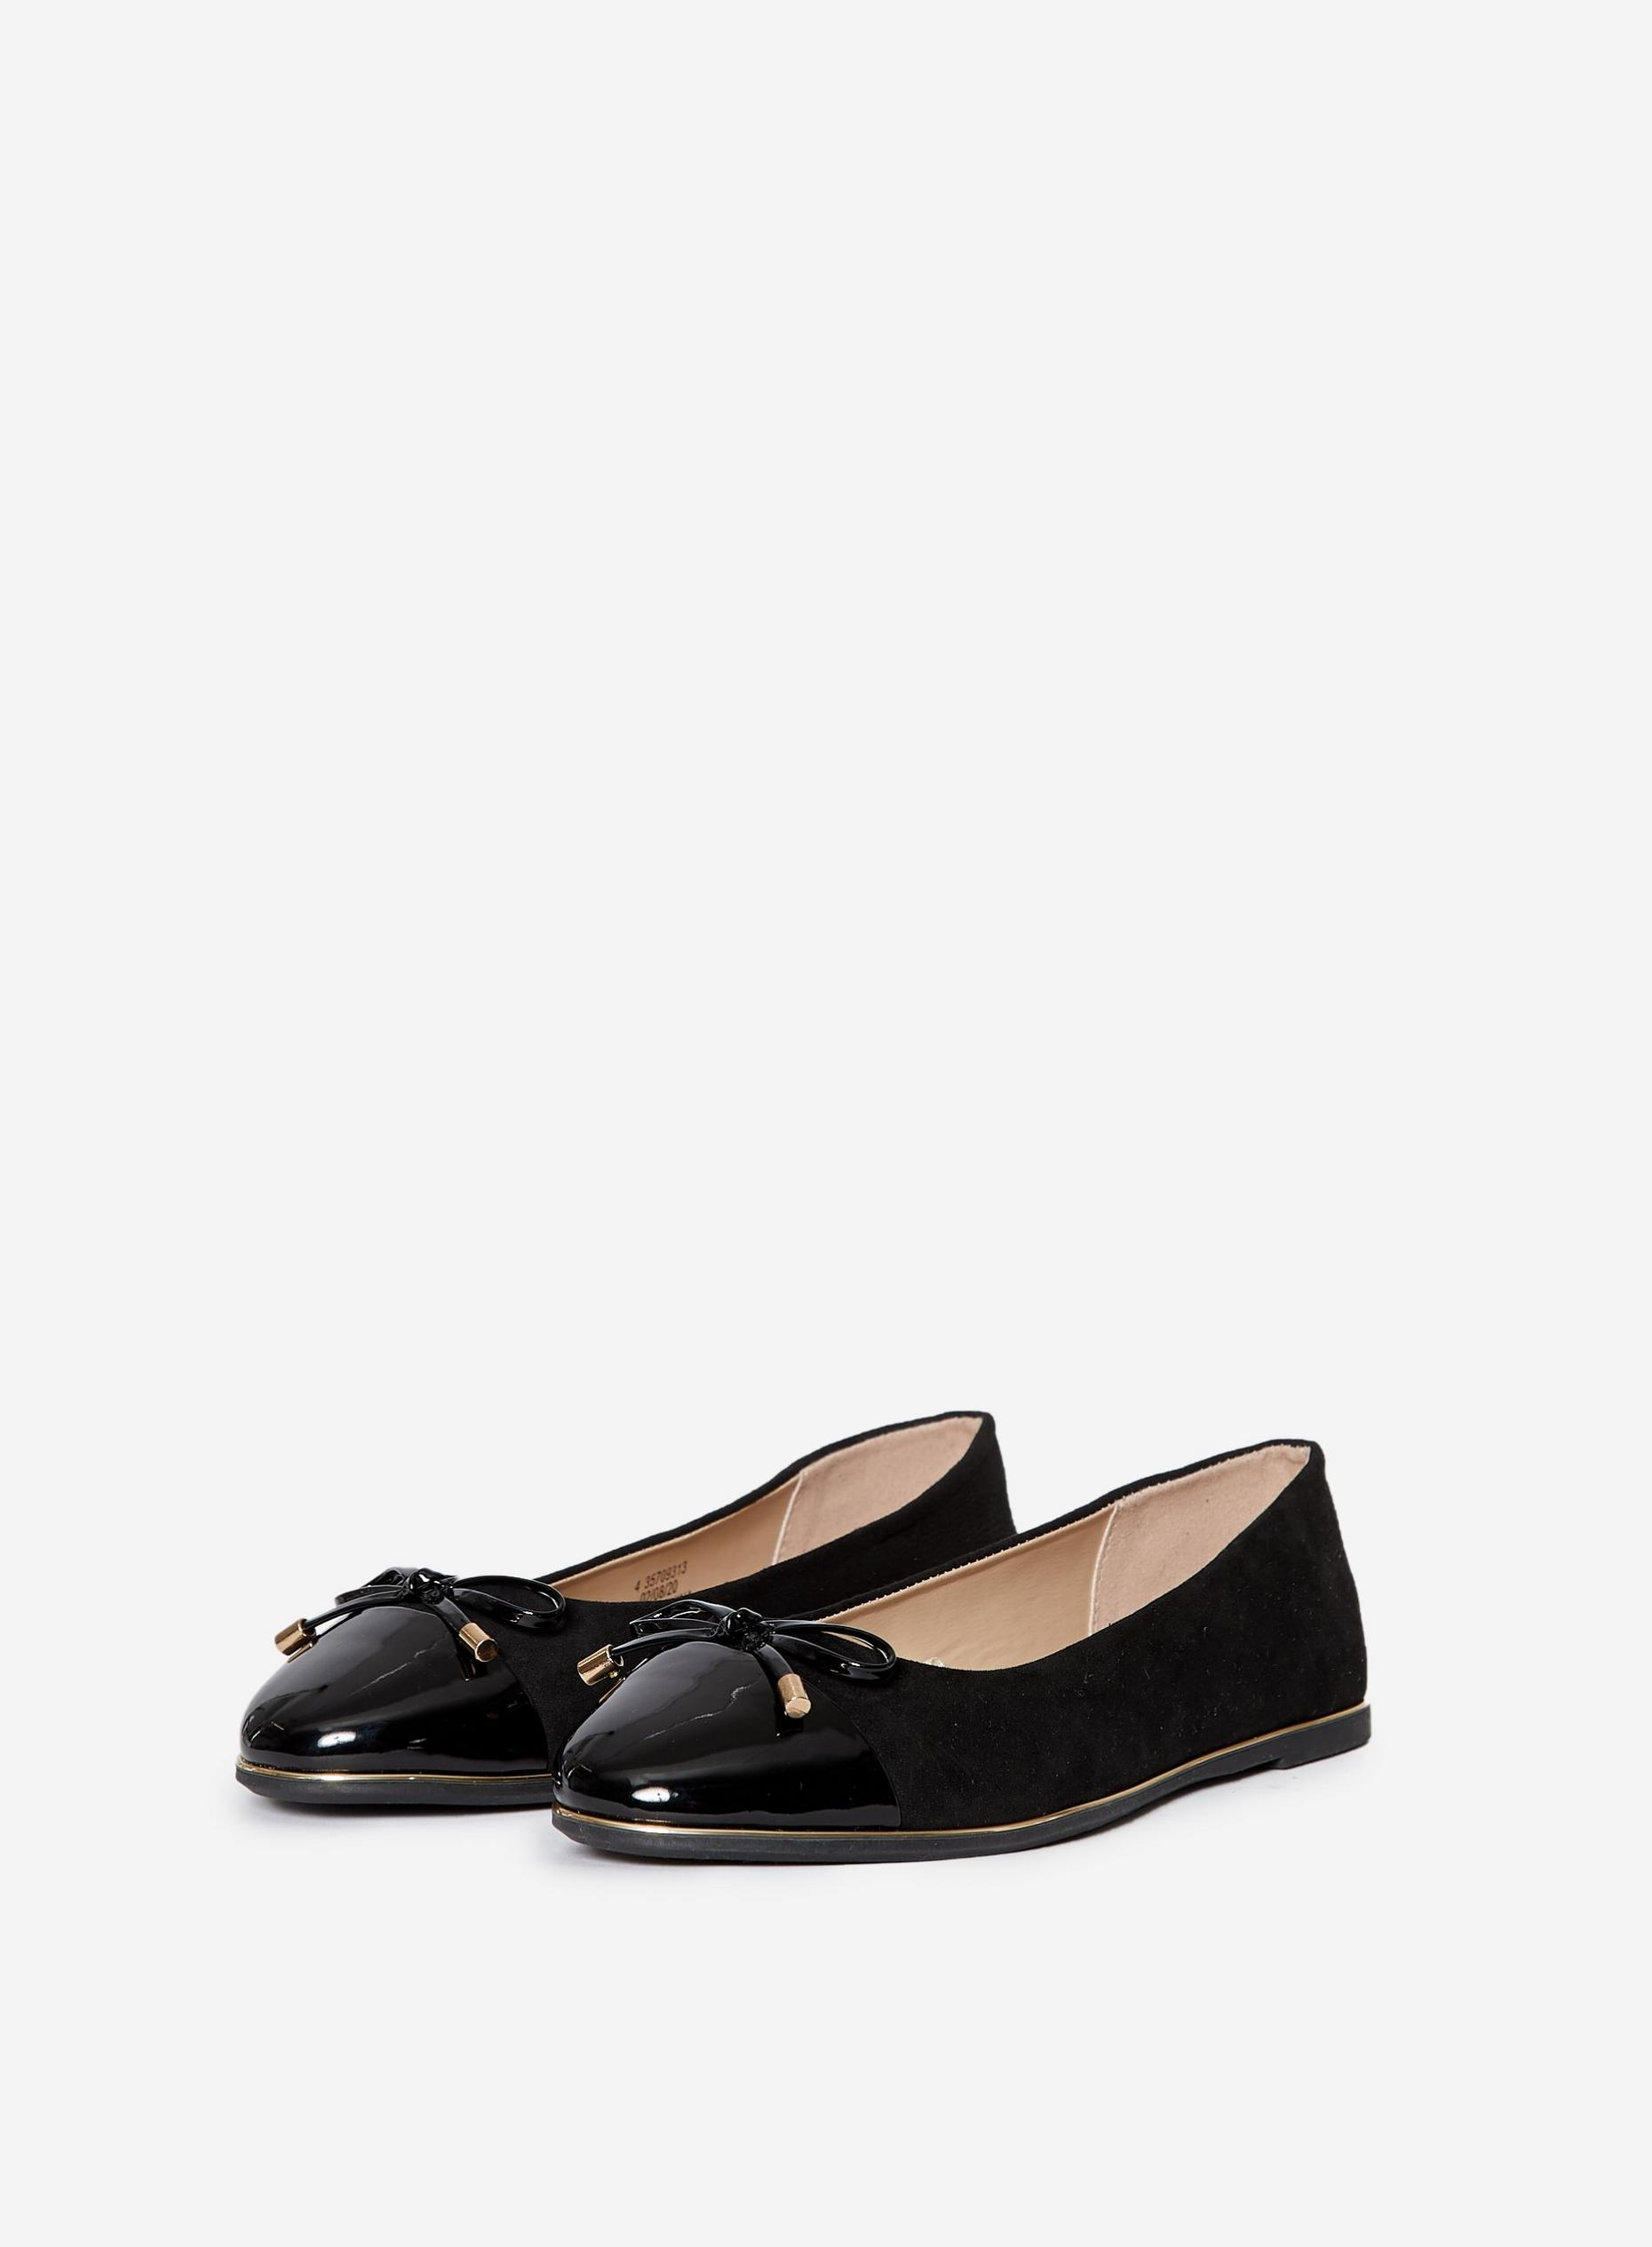 Wide Fit Black Pine Pumps